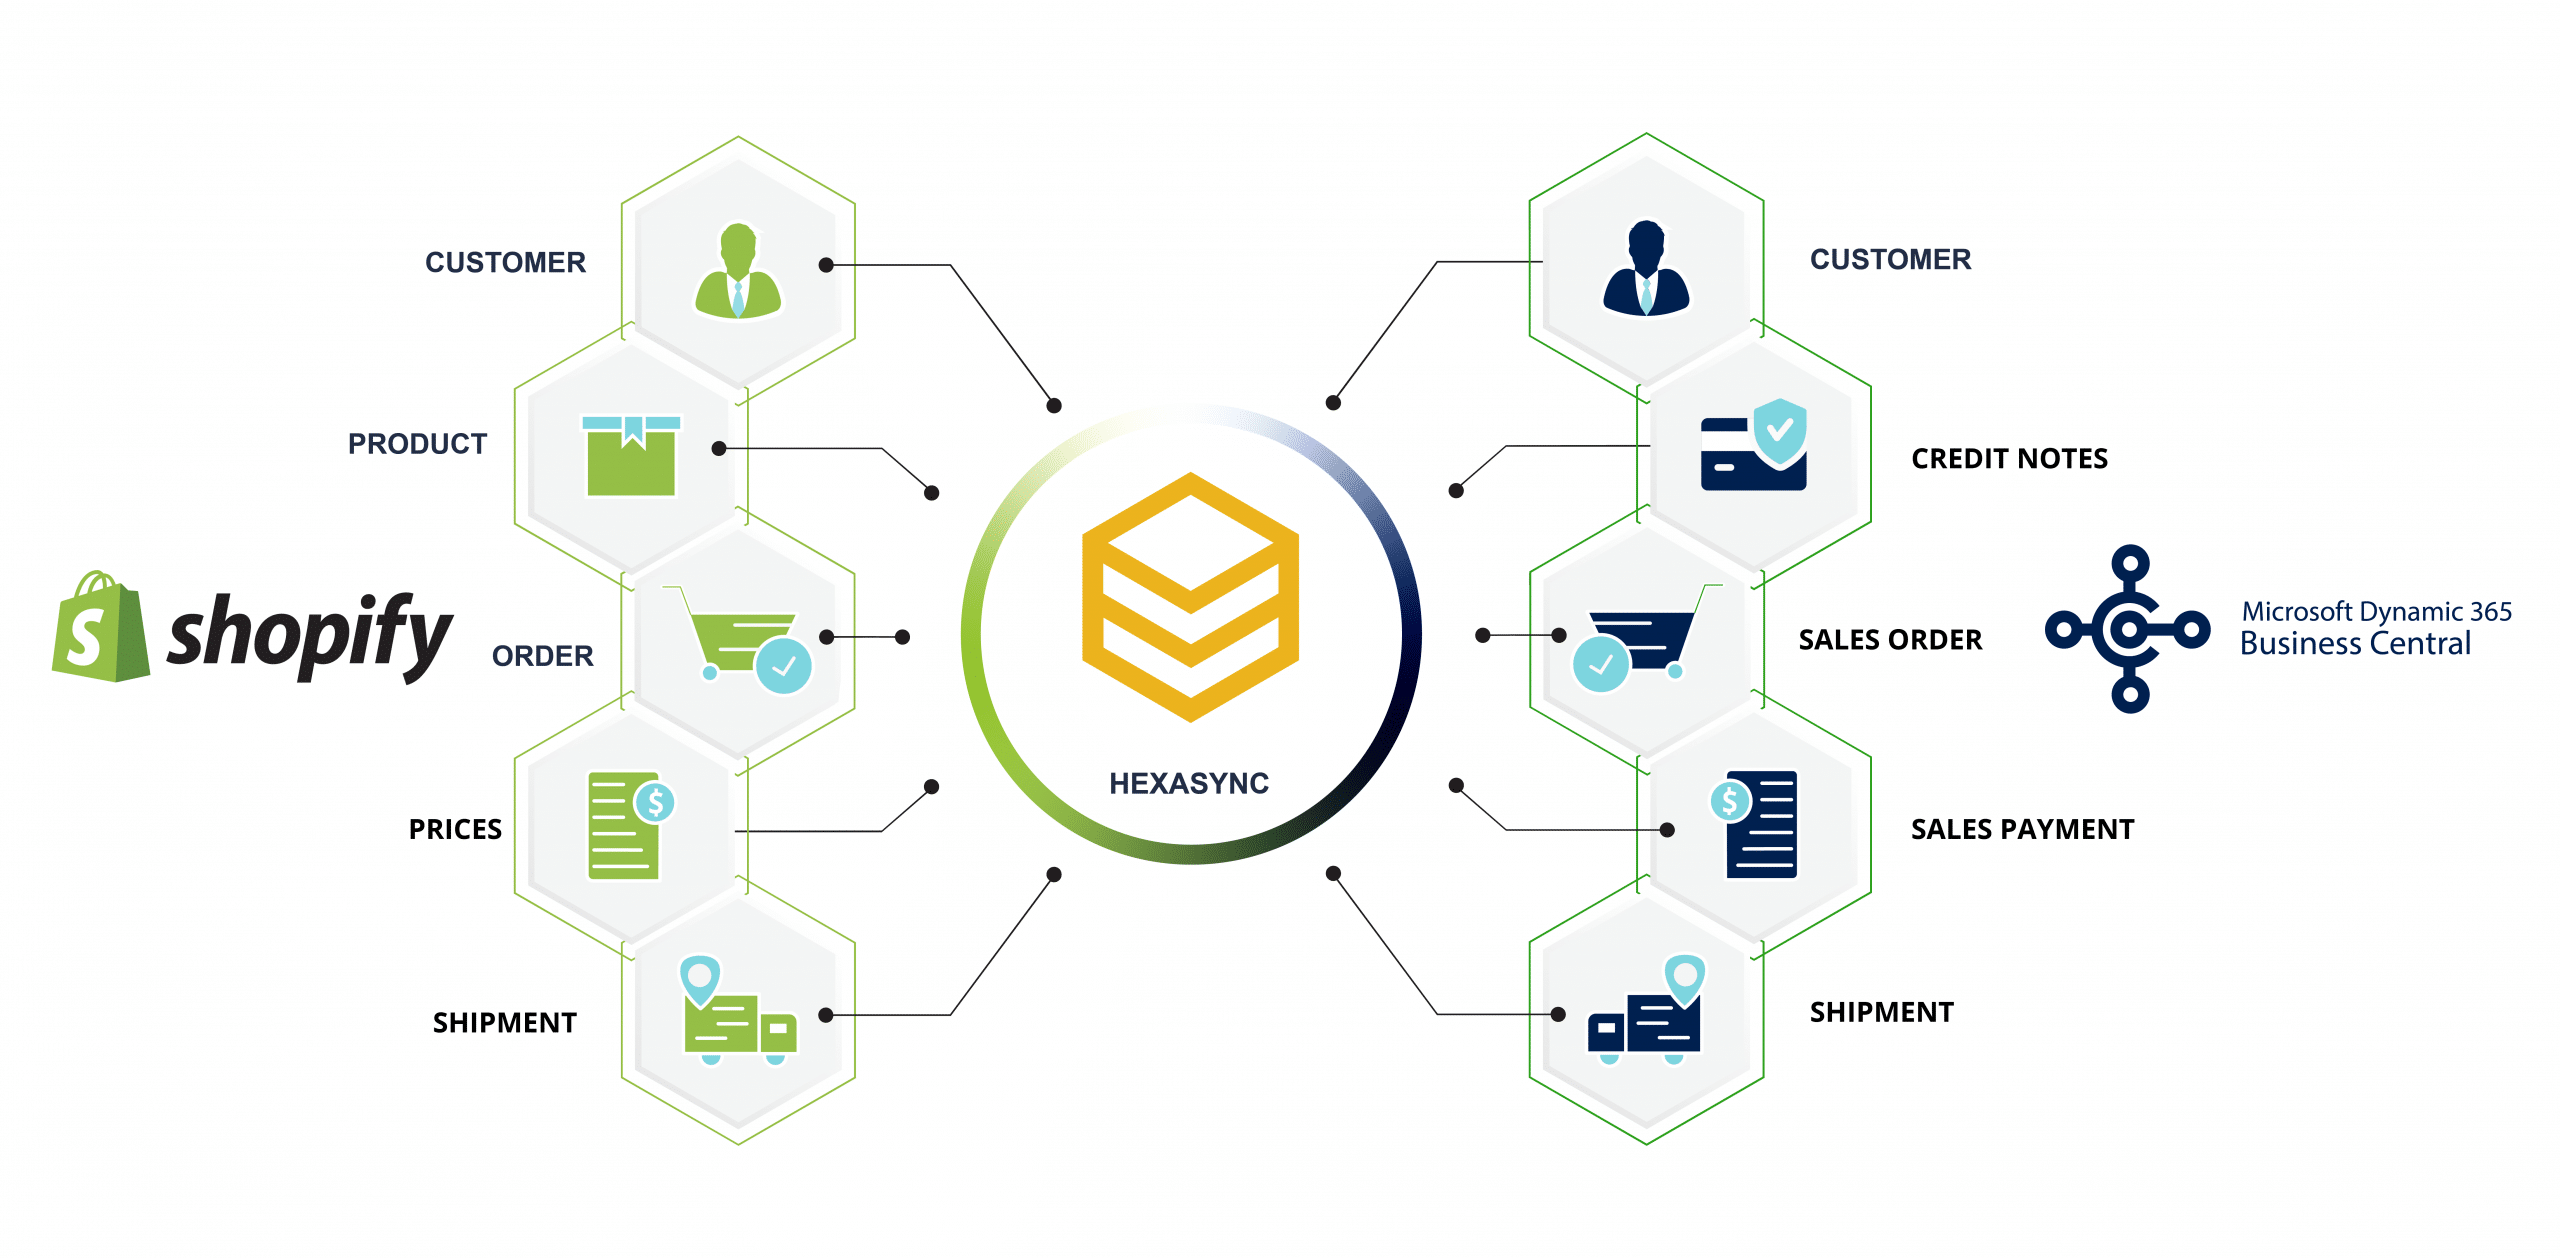 Shopifdynamics 365 business central integration